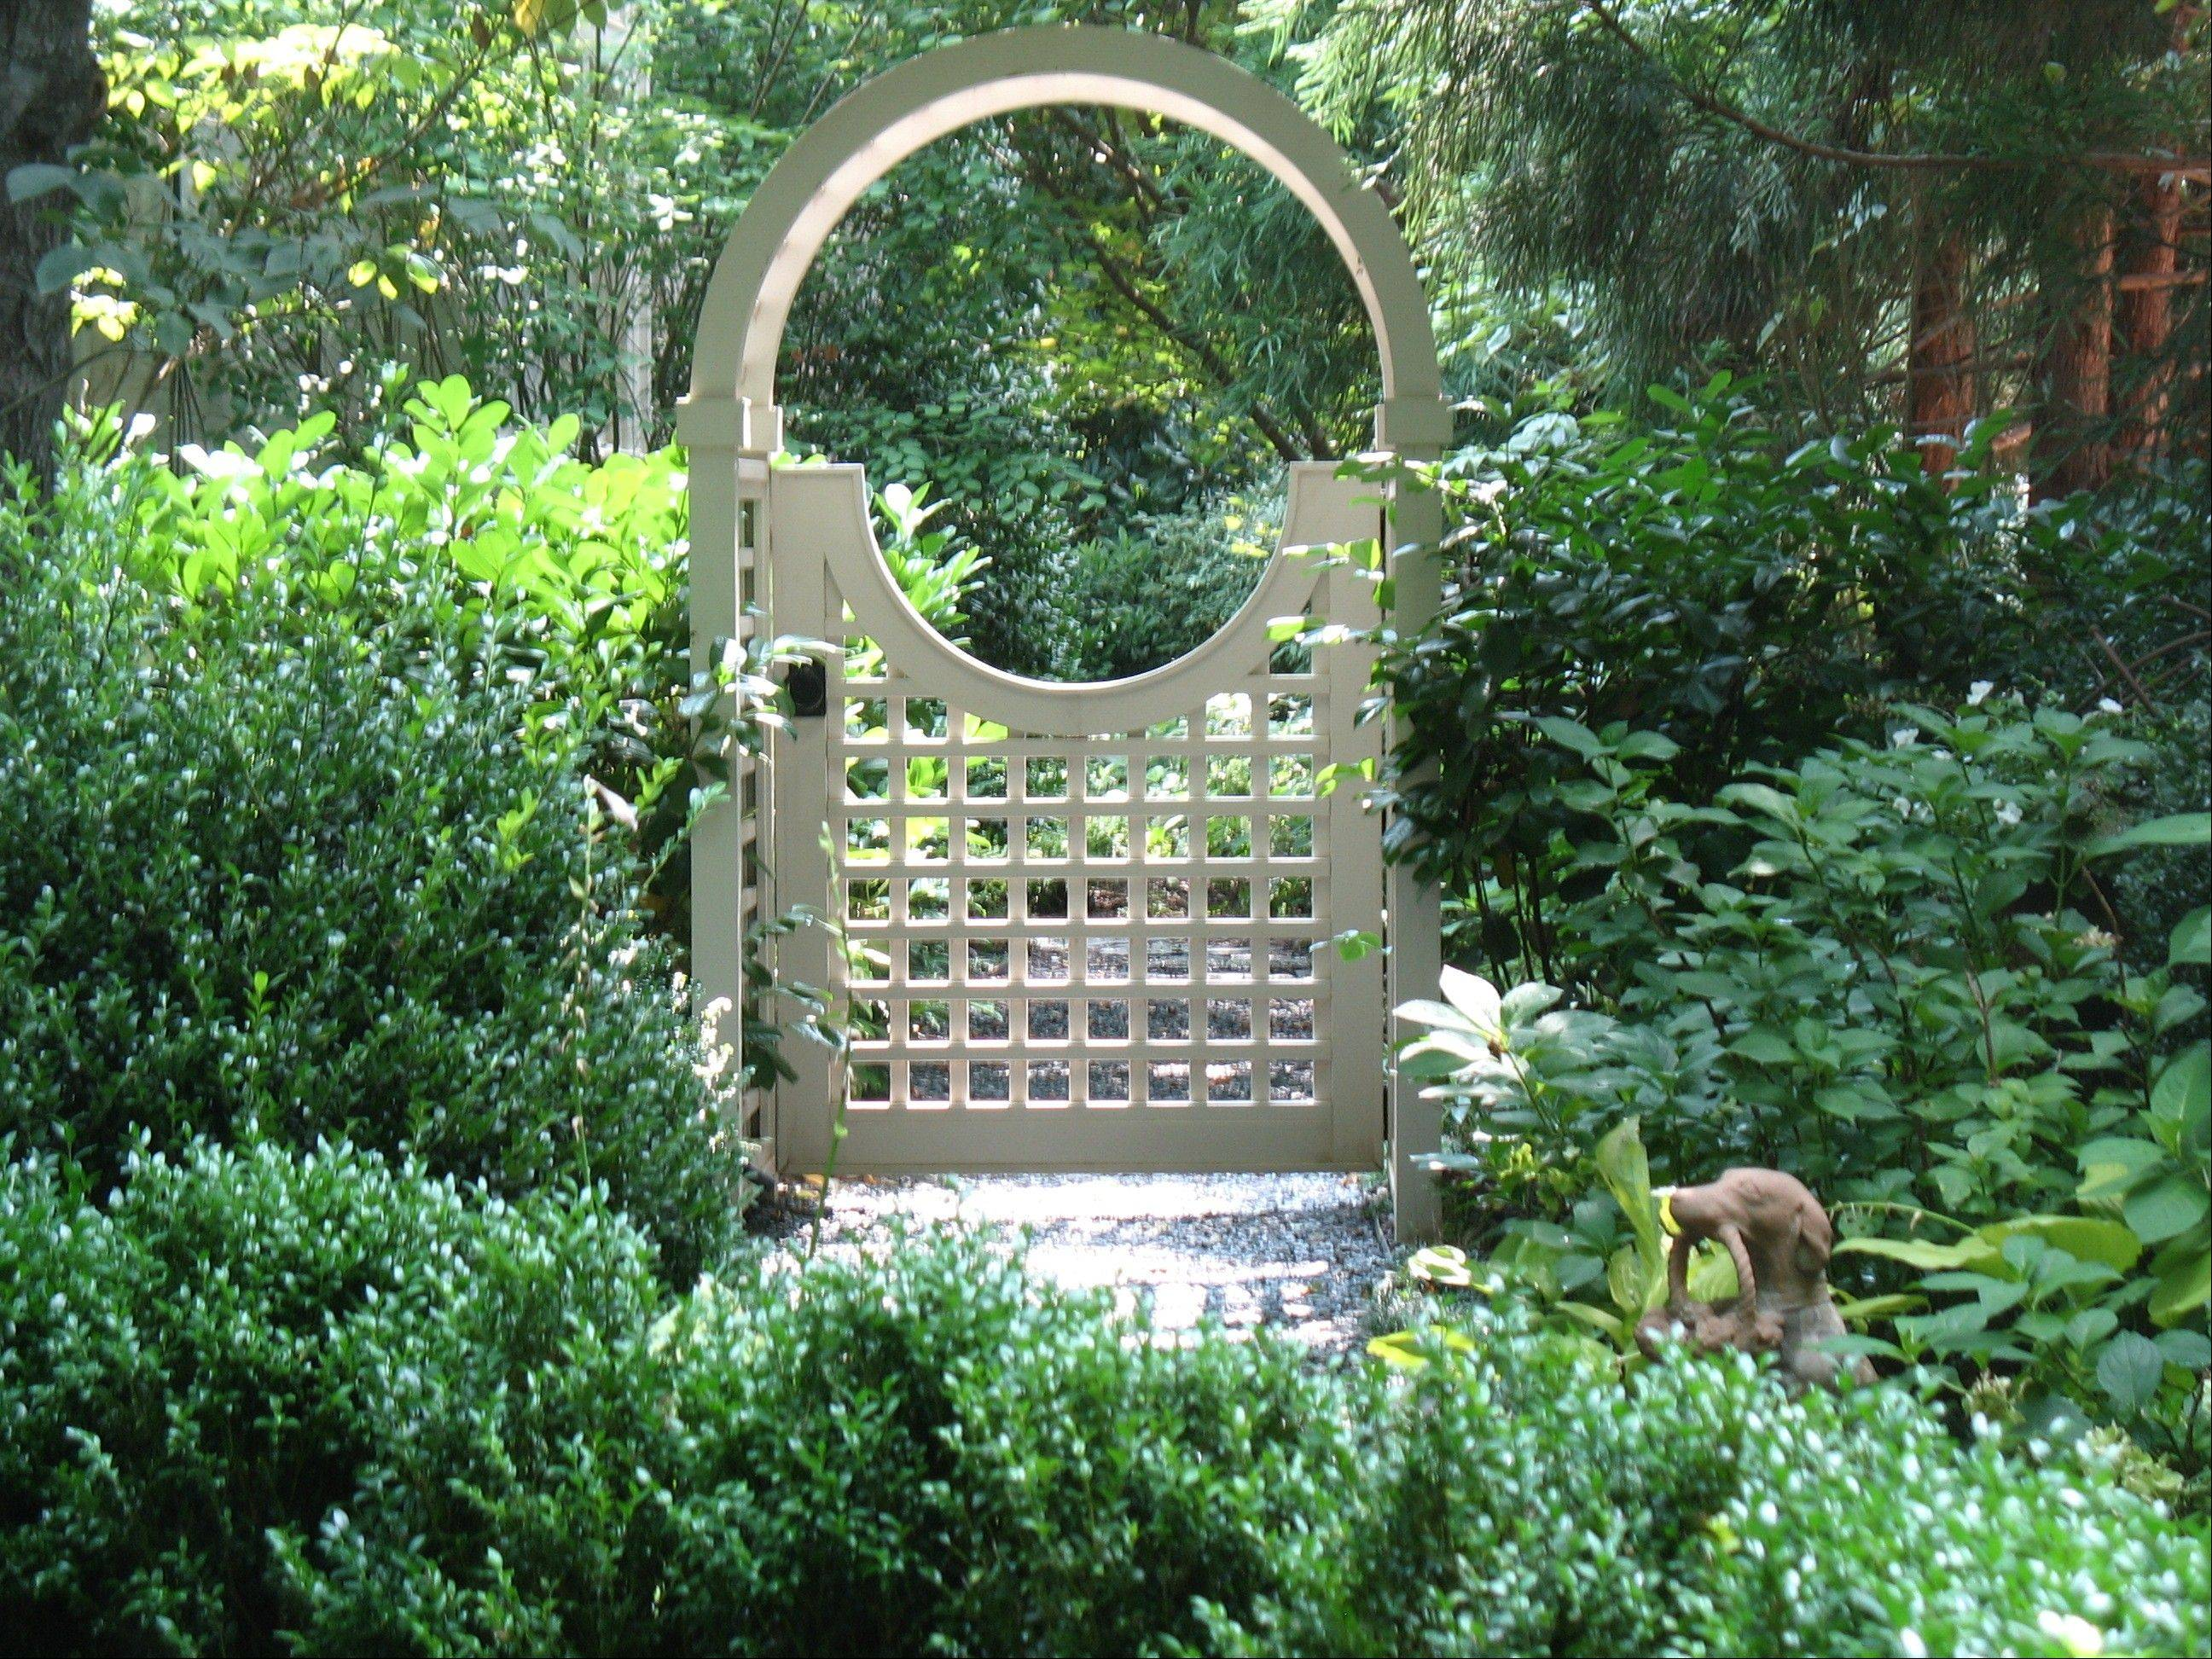 A gated arbor could bridge two areas of the backyard.